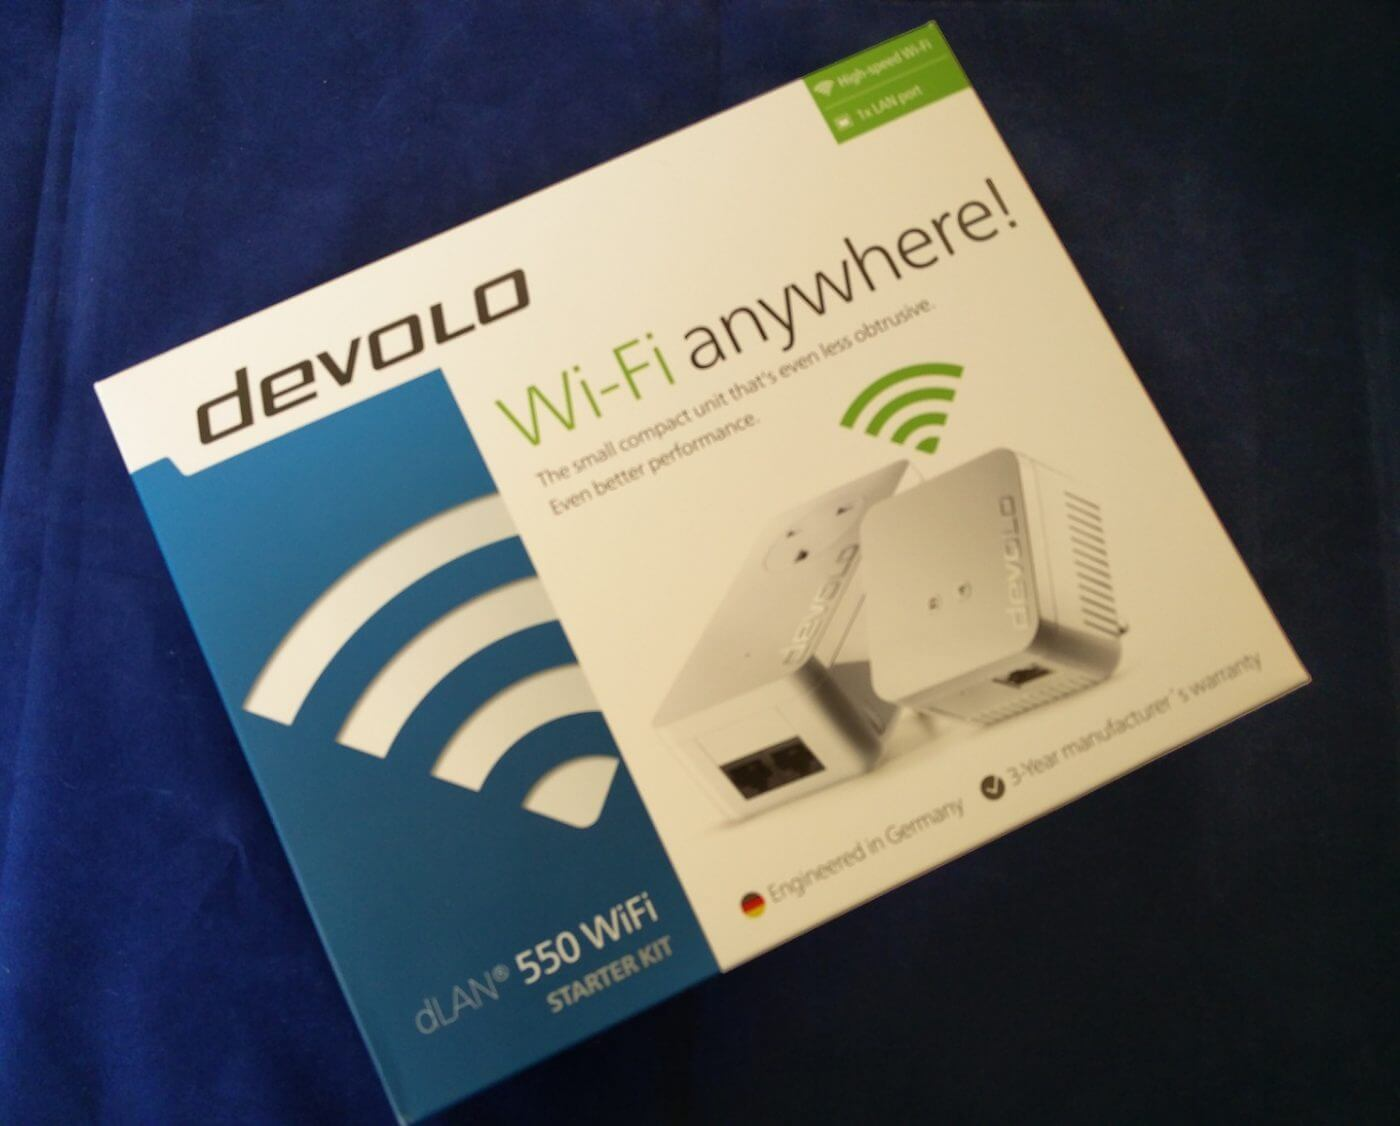 Devolo 550 Starter Kit Box